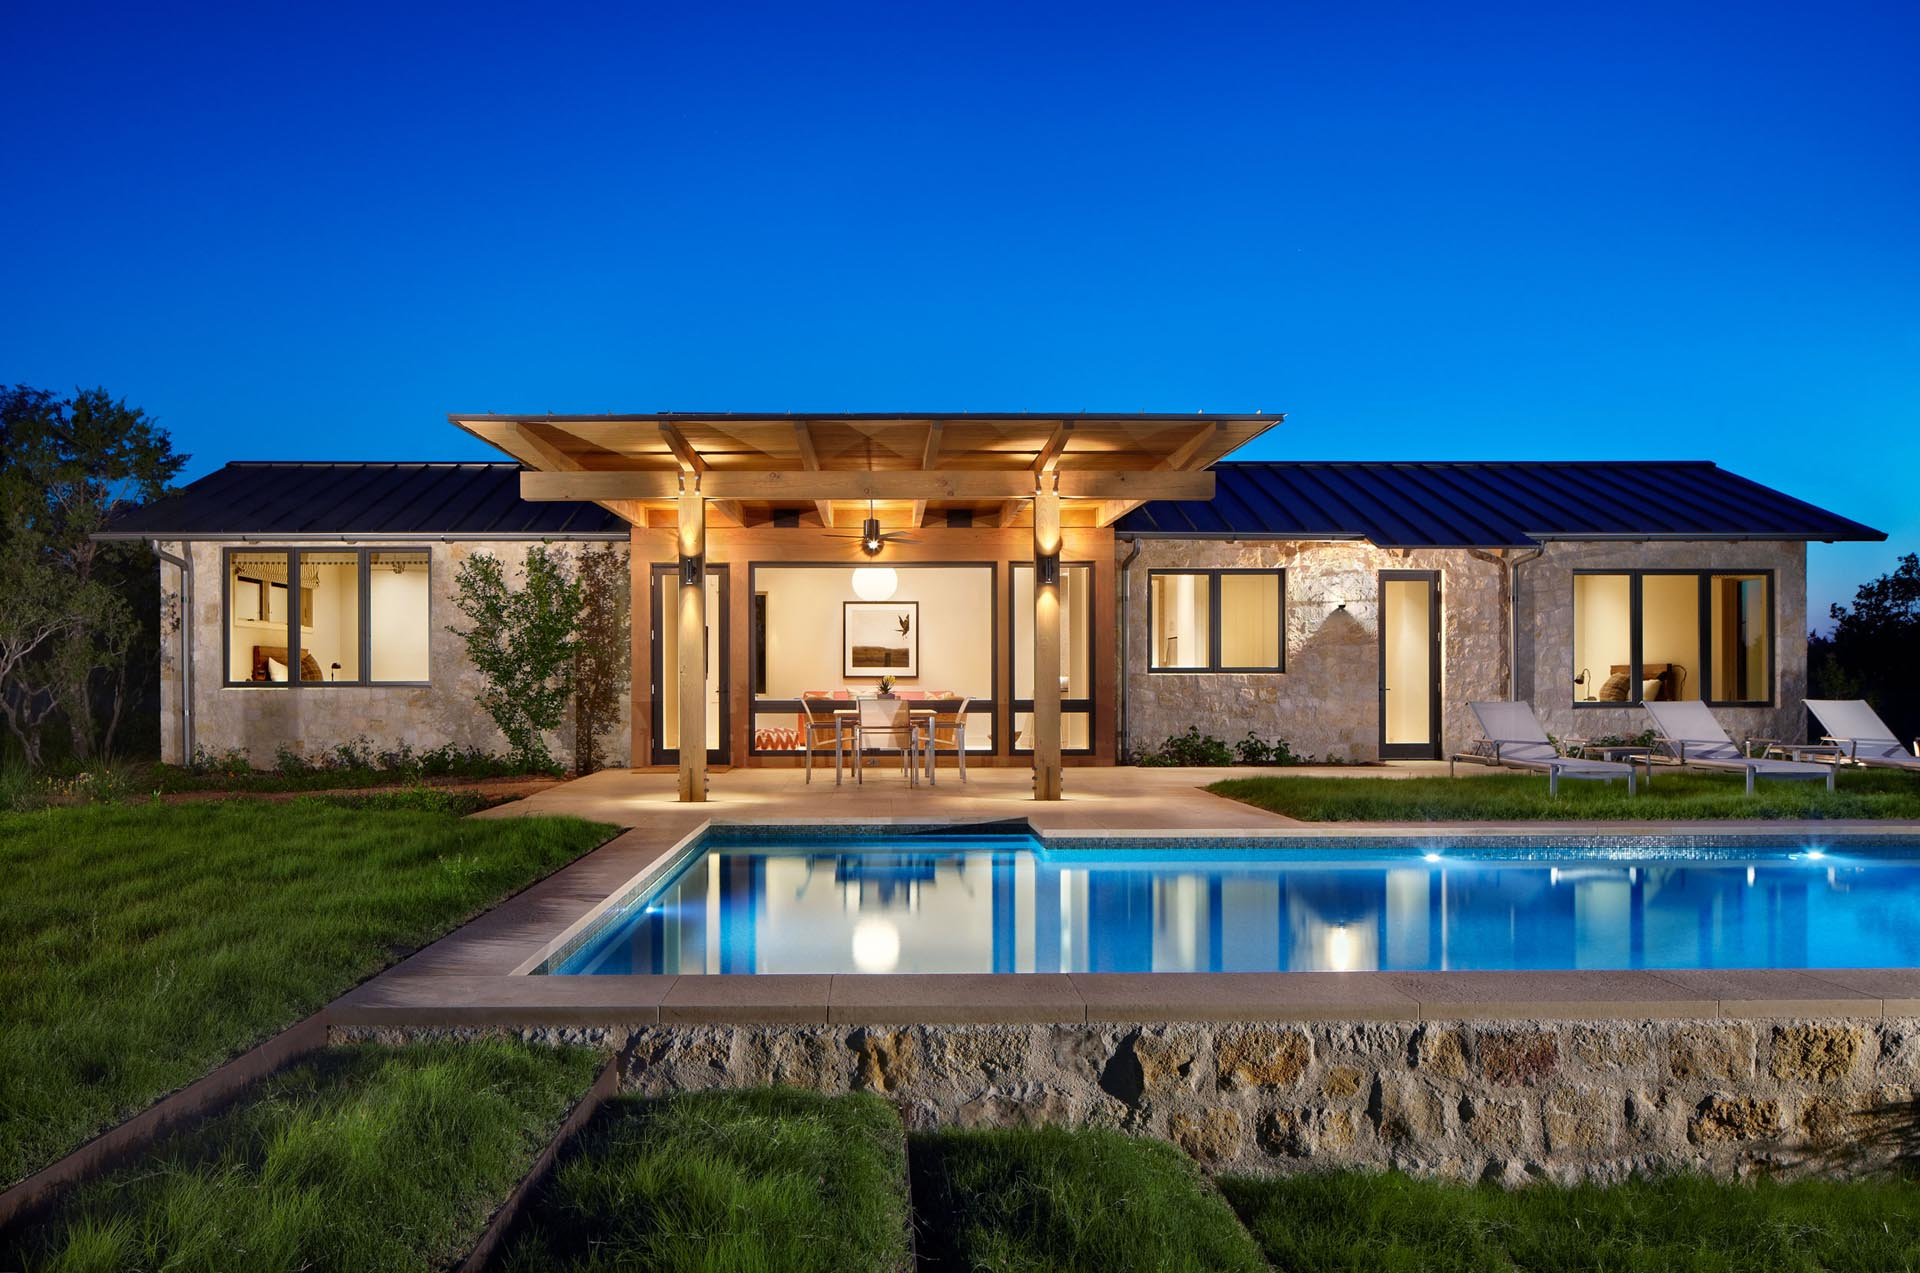 A guest house by the pool the includes a pair of bedrooms and an open plan living room and kitchen.